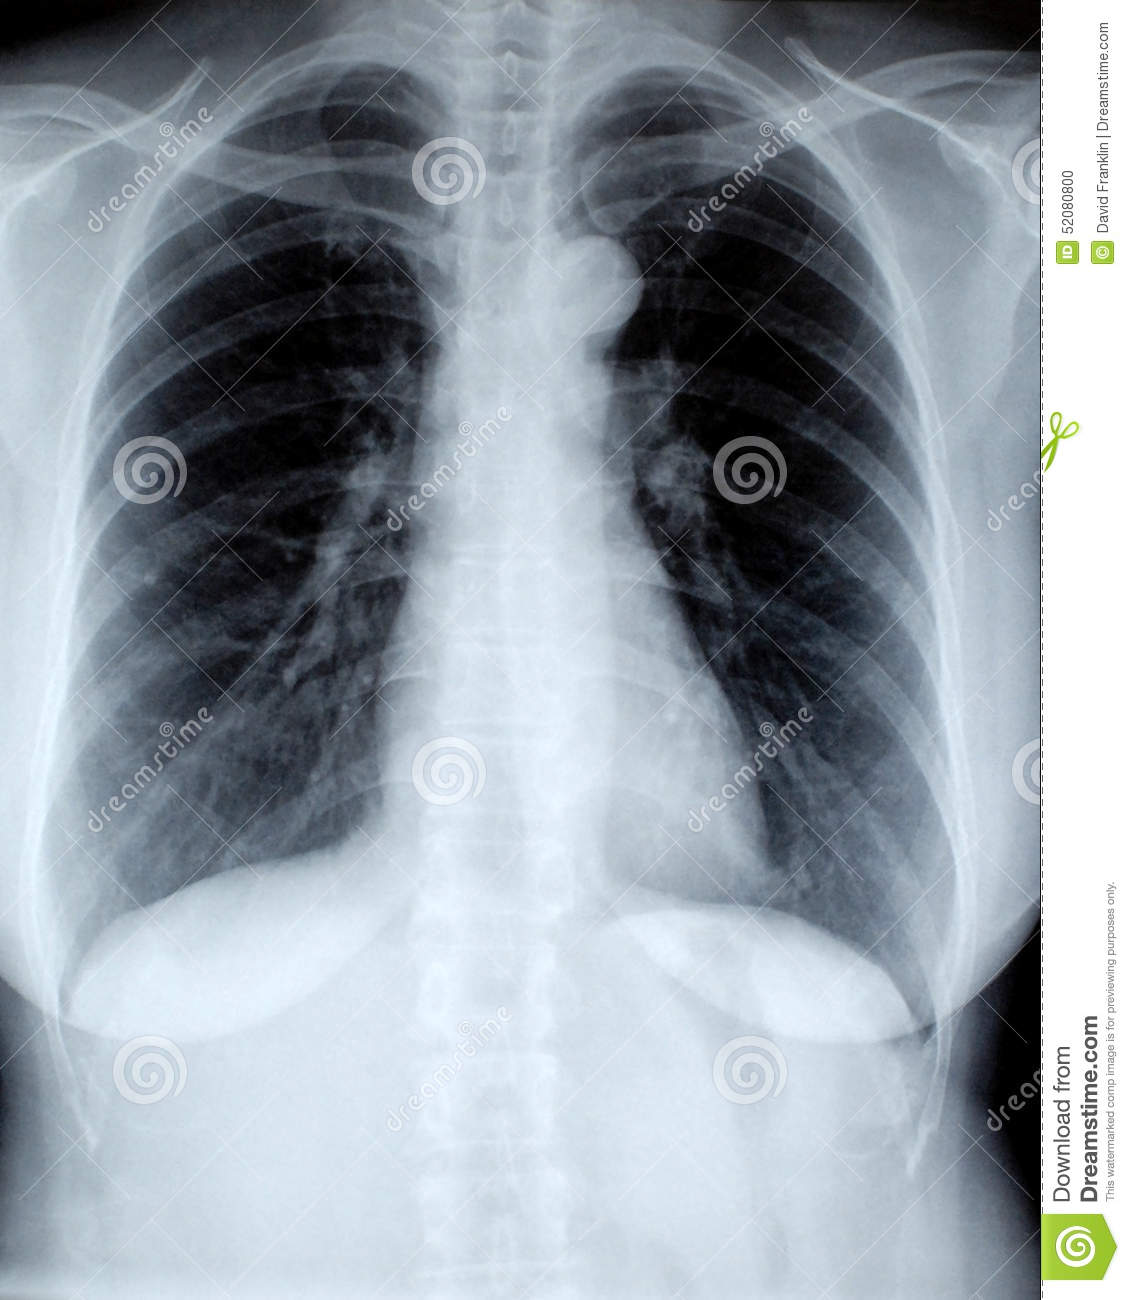 Female chest xray, front view